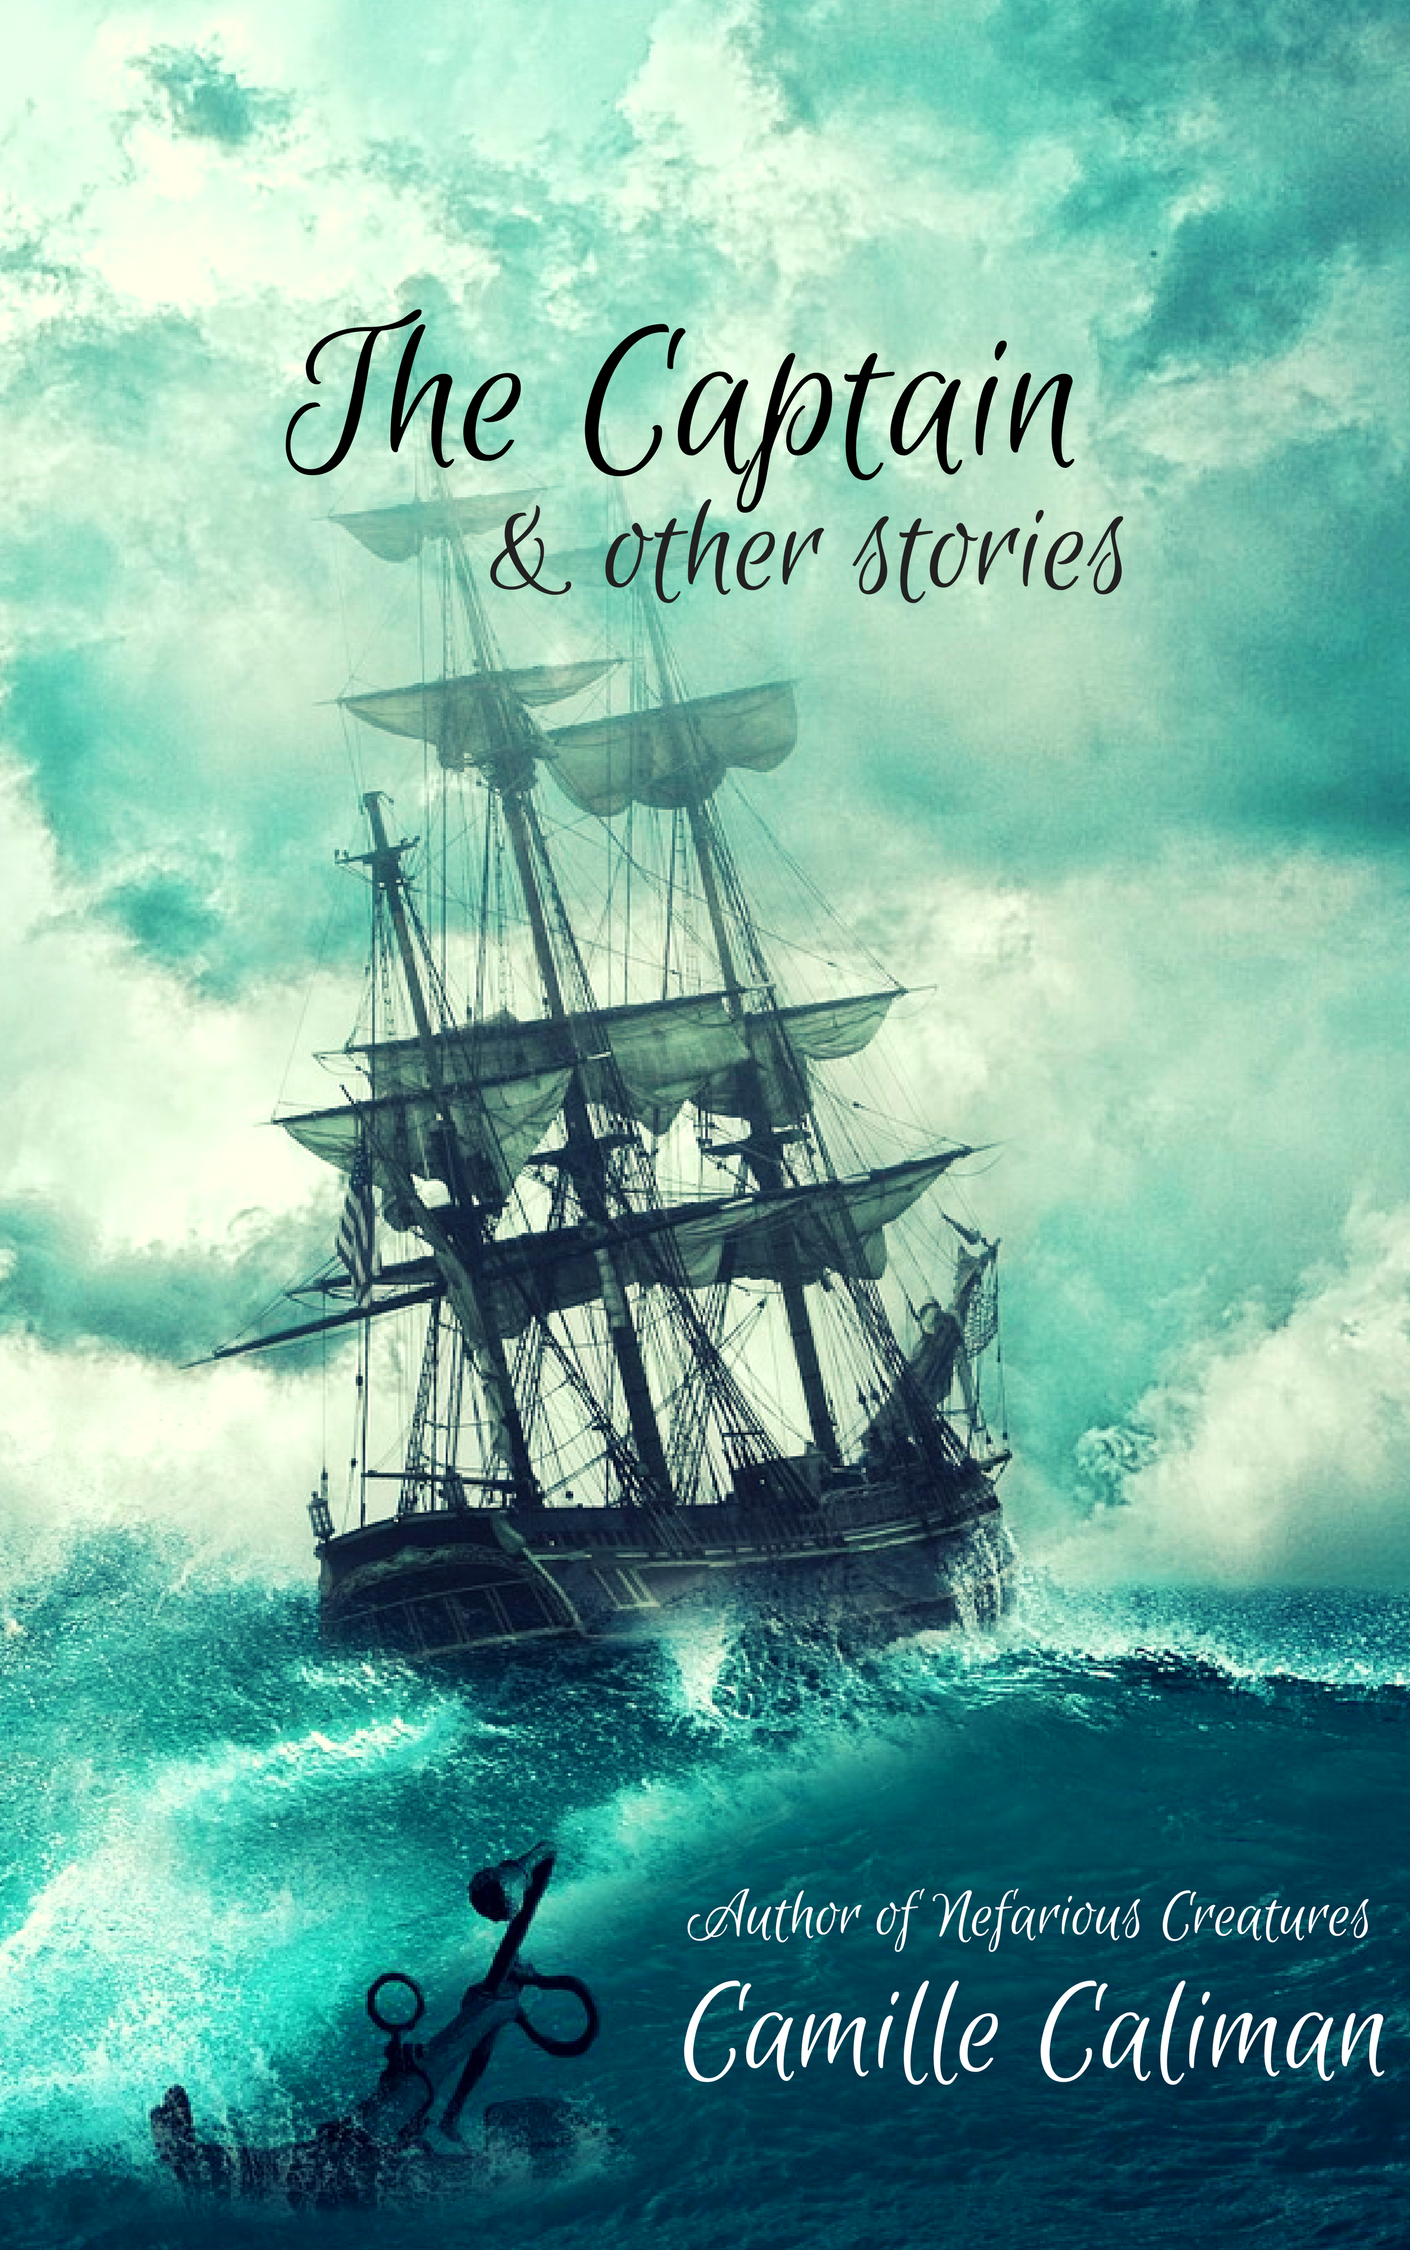 New cover for the The Captain #pirates #magic #yabooks #